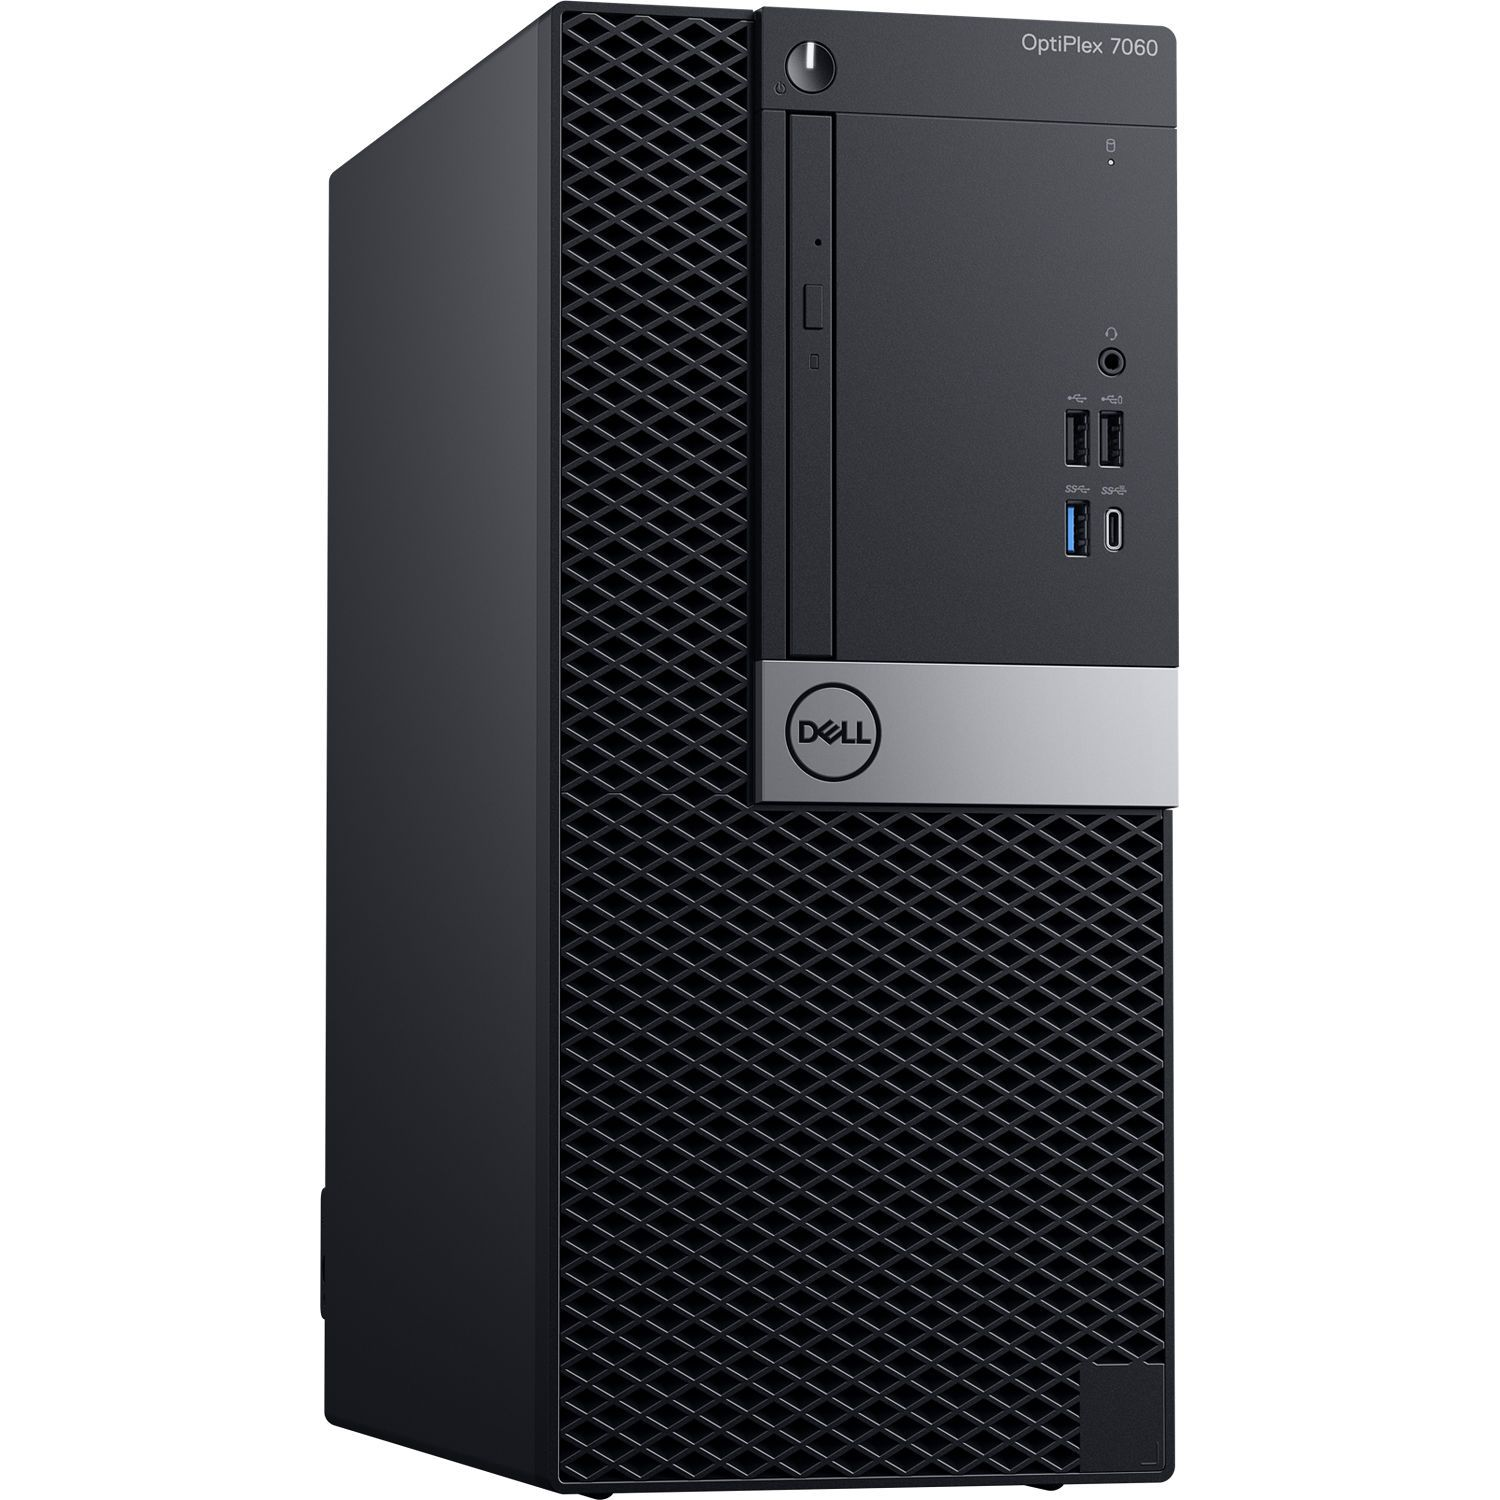 Cpu Dell Optiplex 7060Mt I5-8400/8Gb/Ssd256Gb/Radeonrx550(4Gb)/W10Pro/Torre